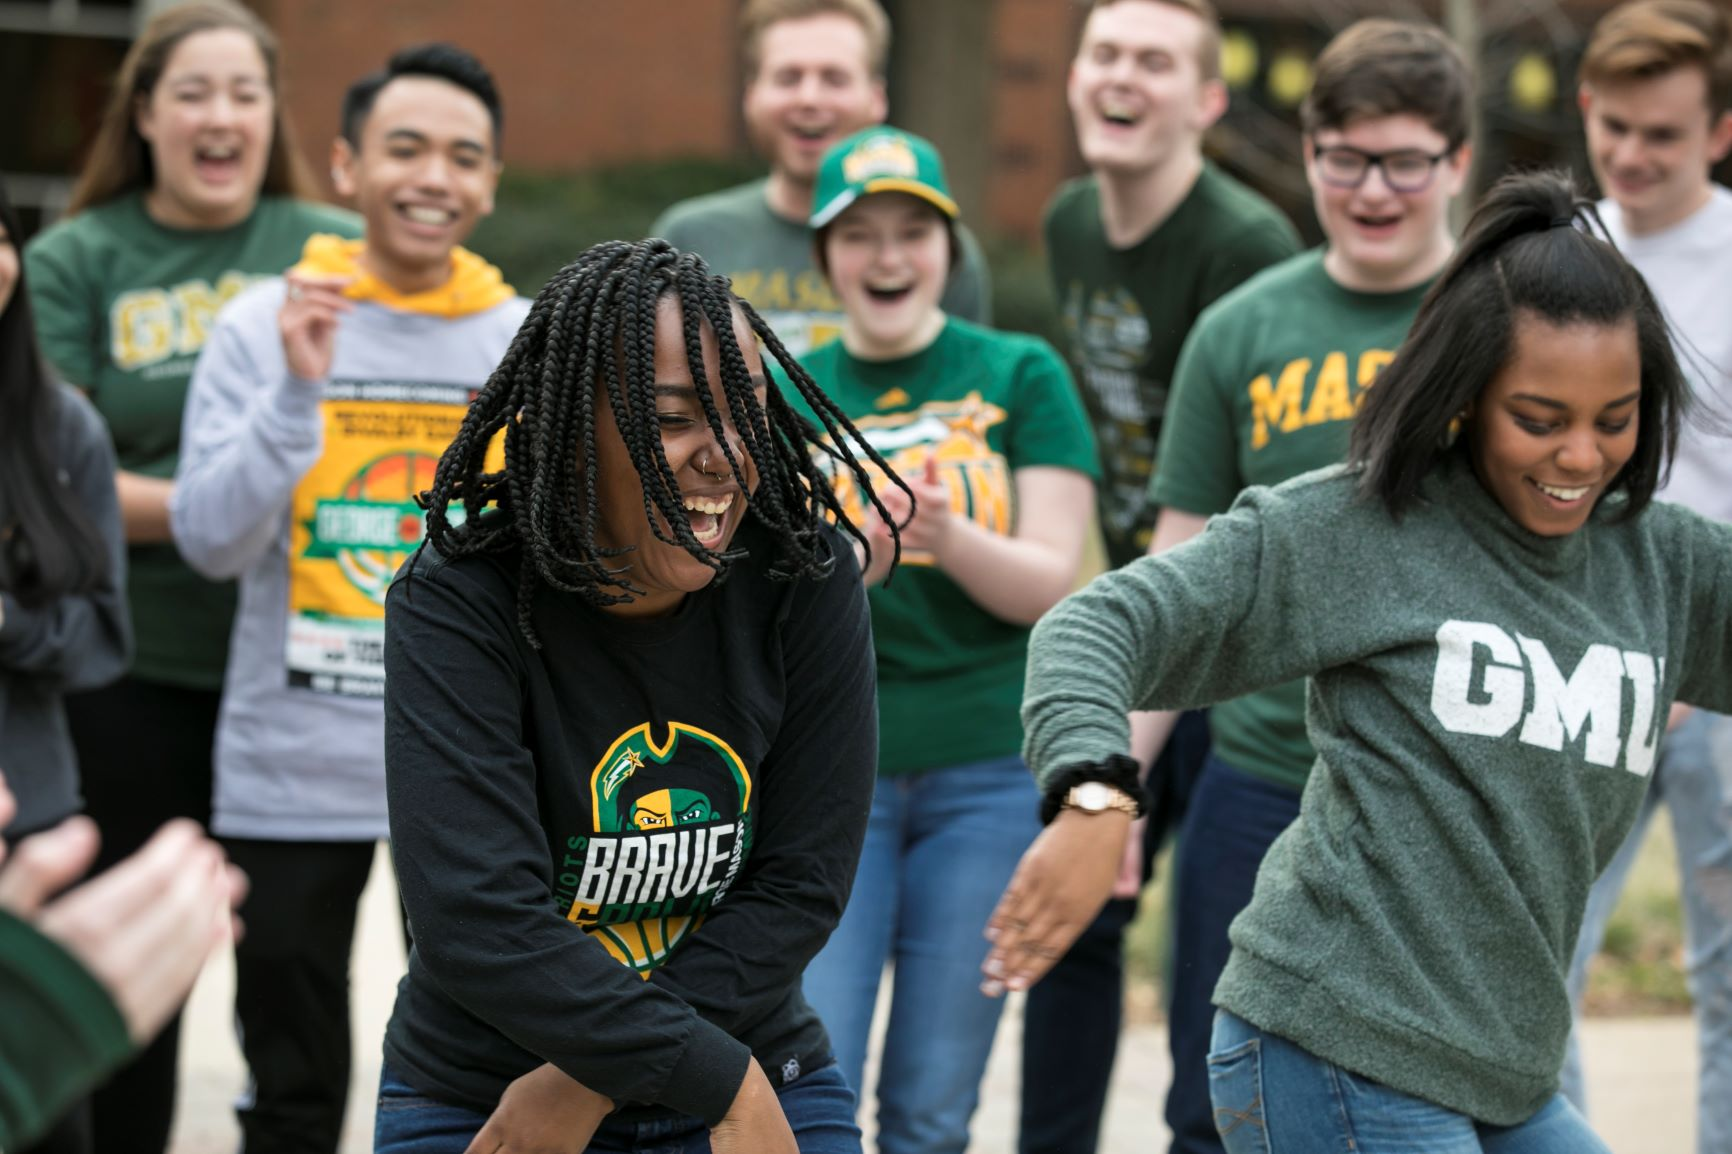 Mason students dancing About the Center